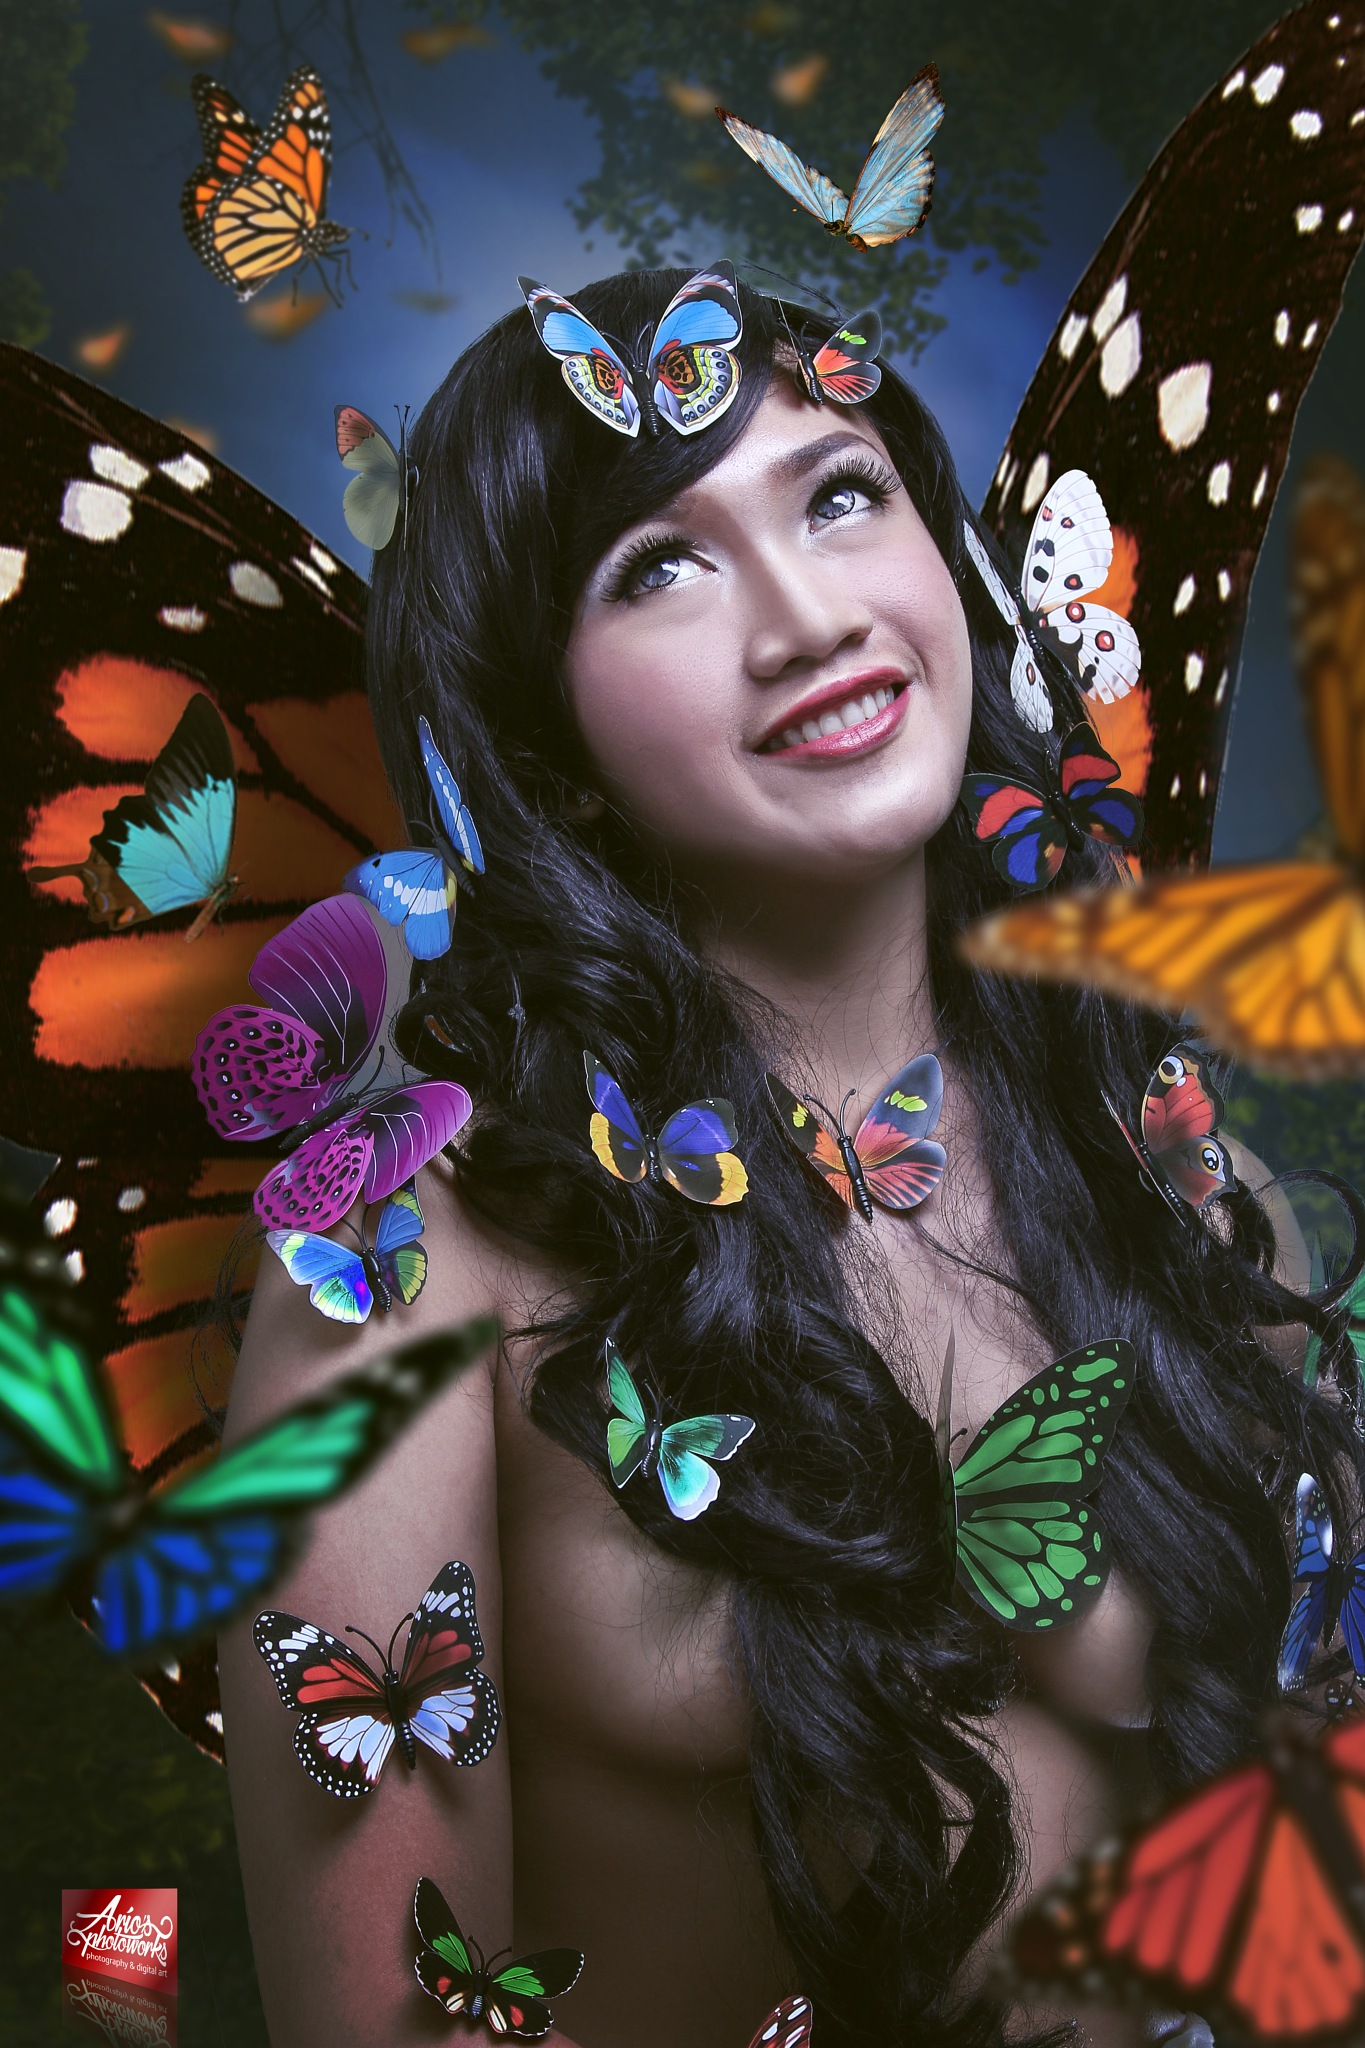 mother's of butterfly by ario photowork